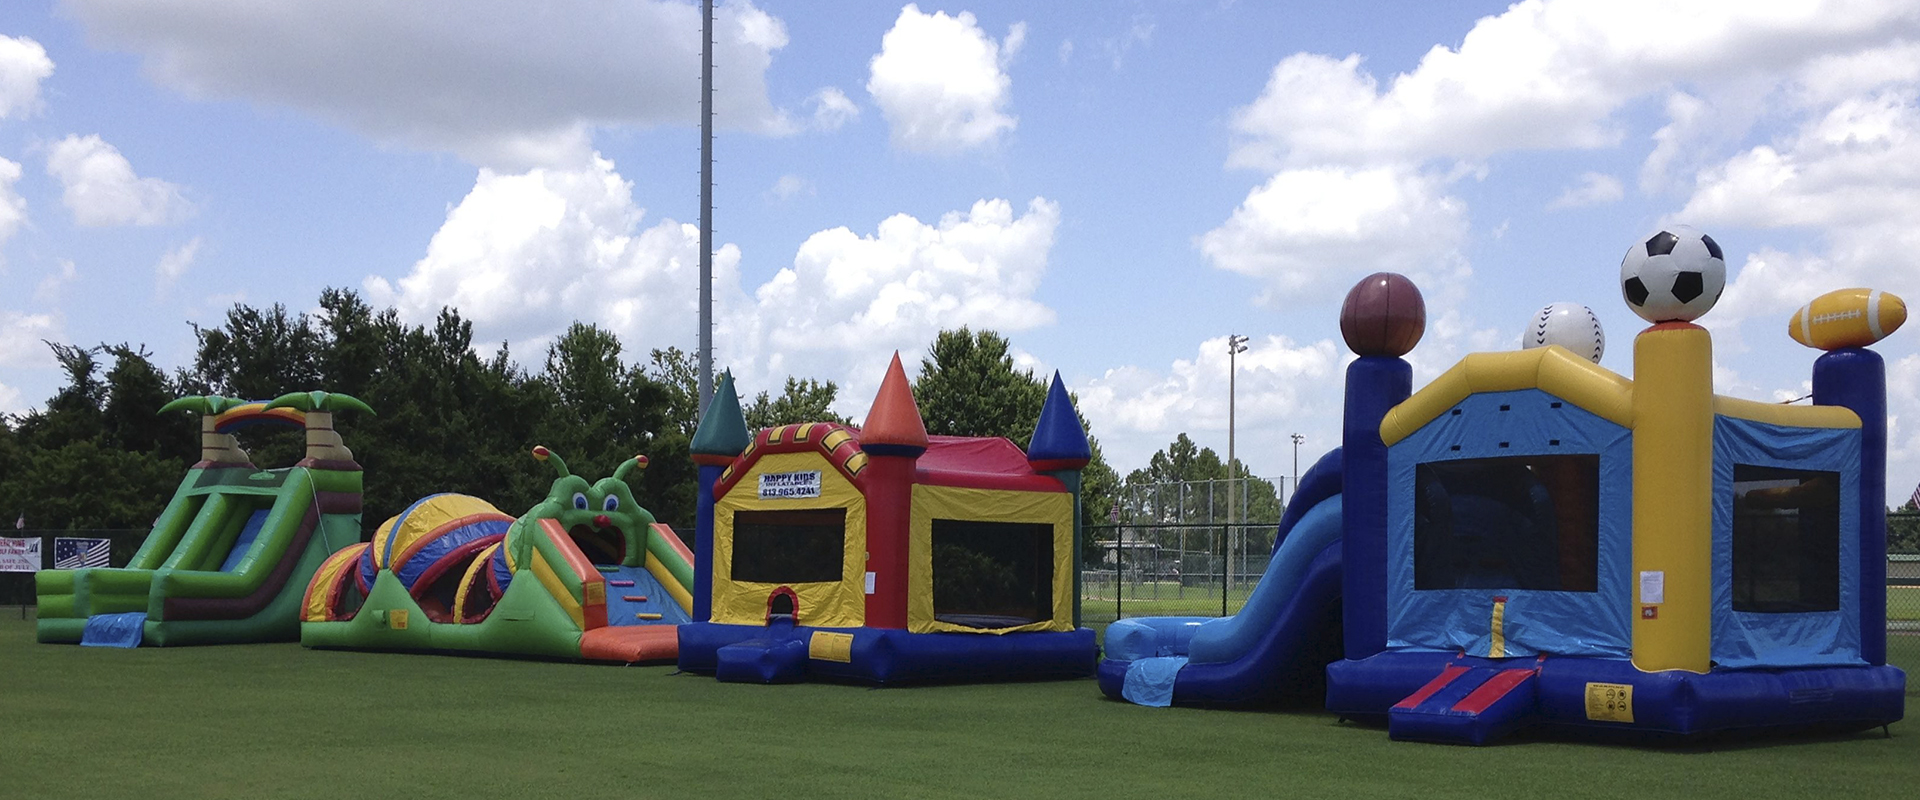 Happy Kids Inflatables Slides Plant City Florida